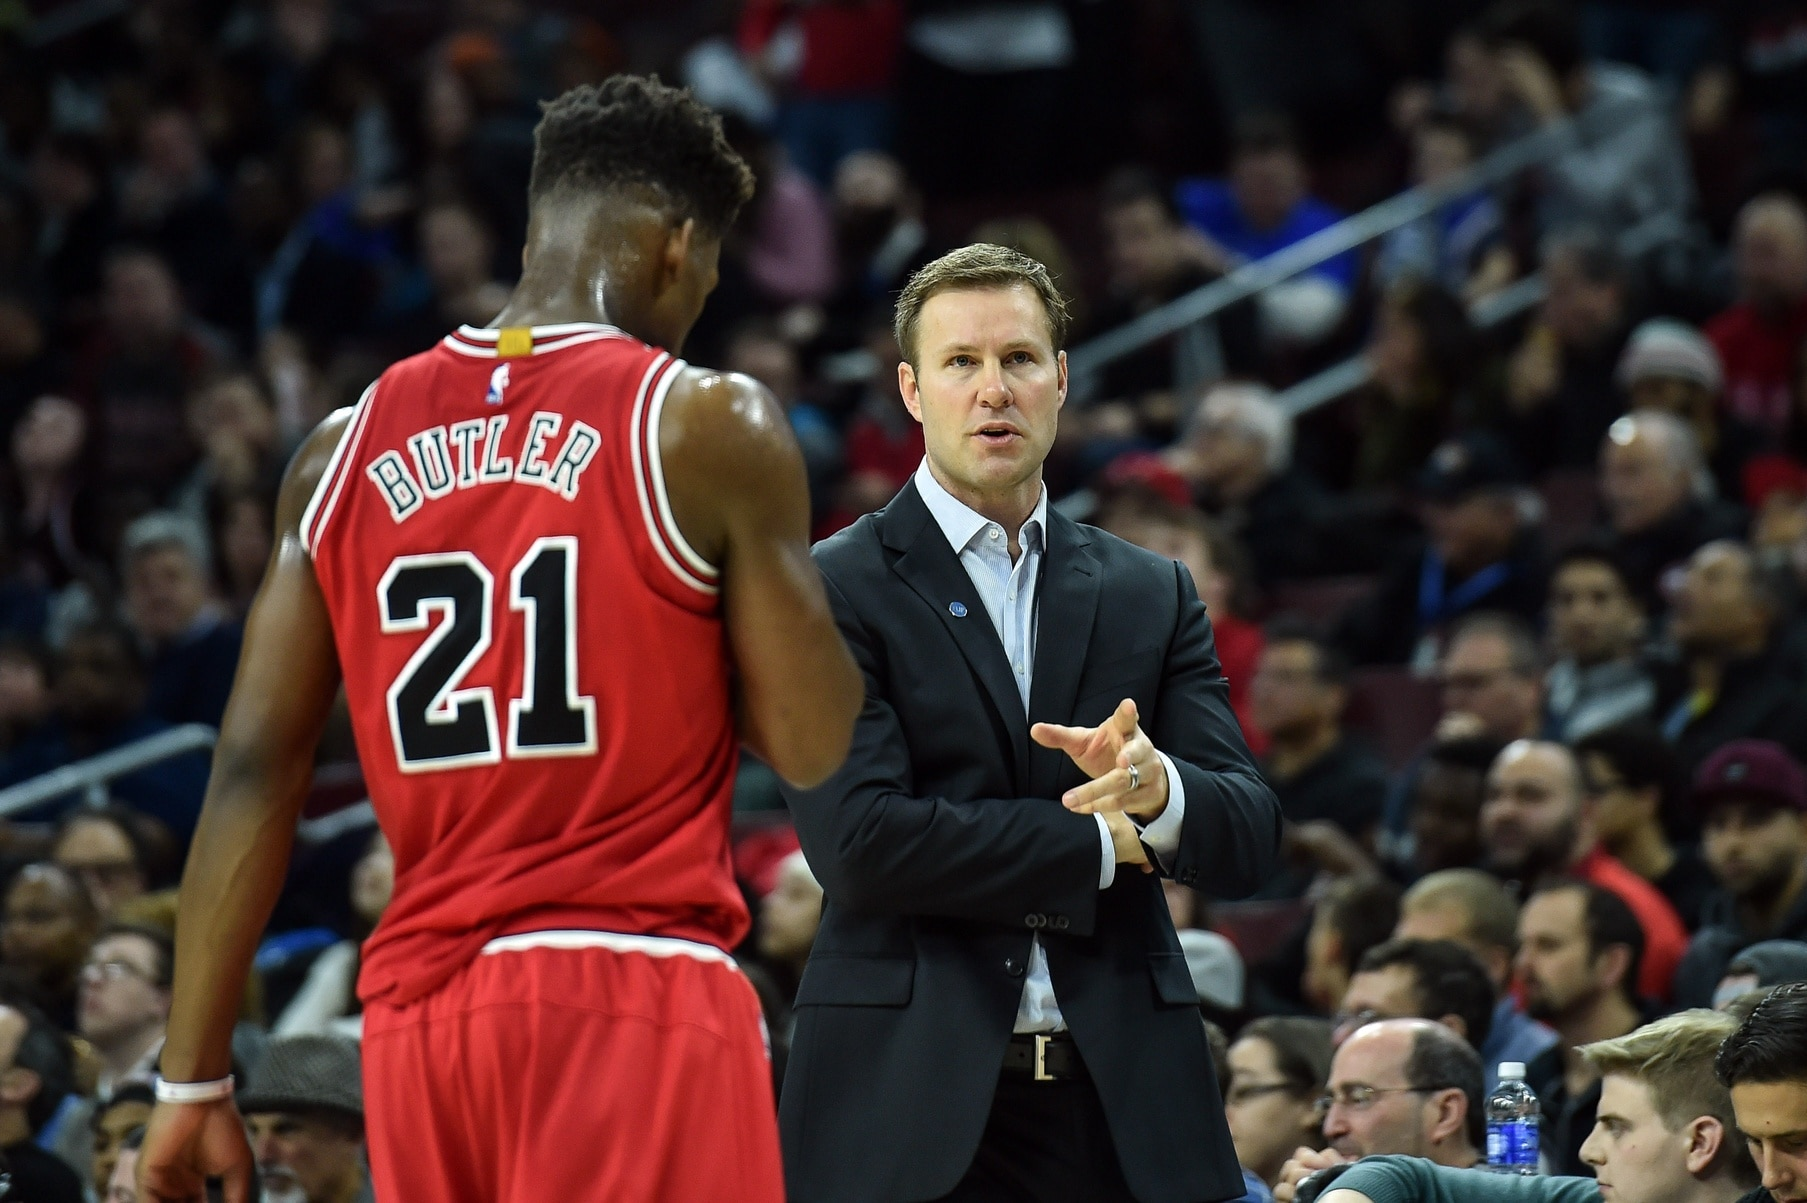 NBA head coaches on the hot seat include Fred Hoiberg